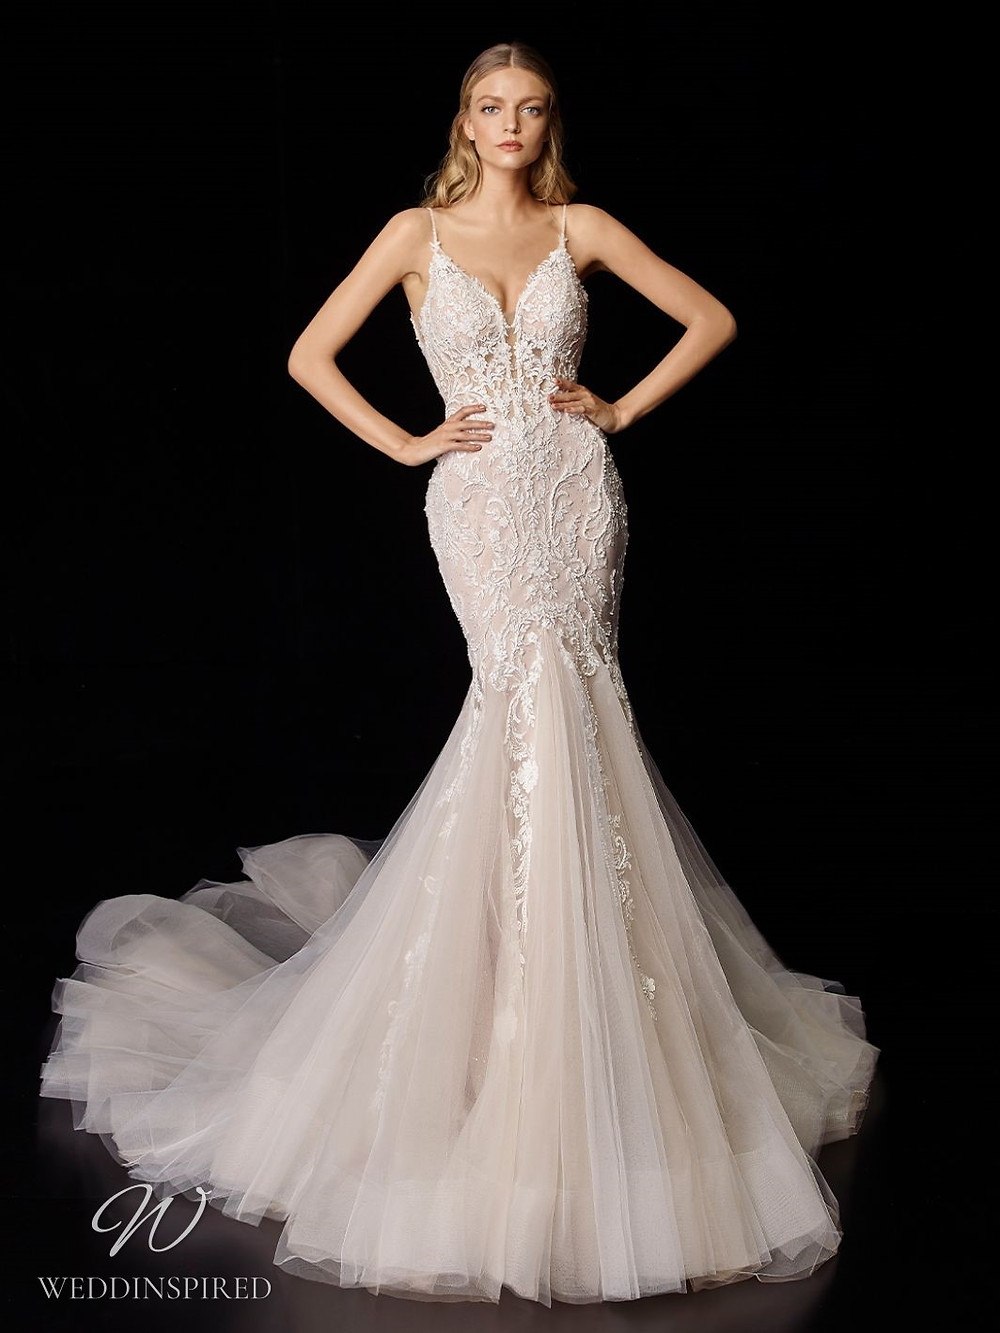 An Enzoani blush lace and tulle mermaid wedding dress with thin straps and a train